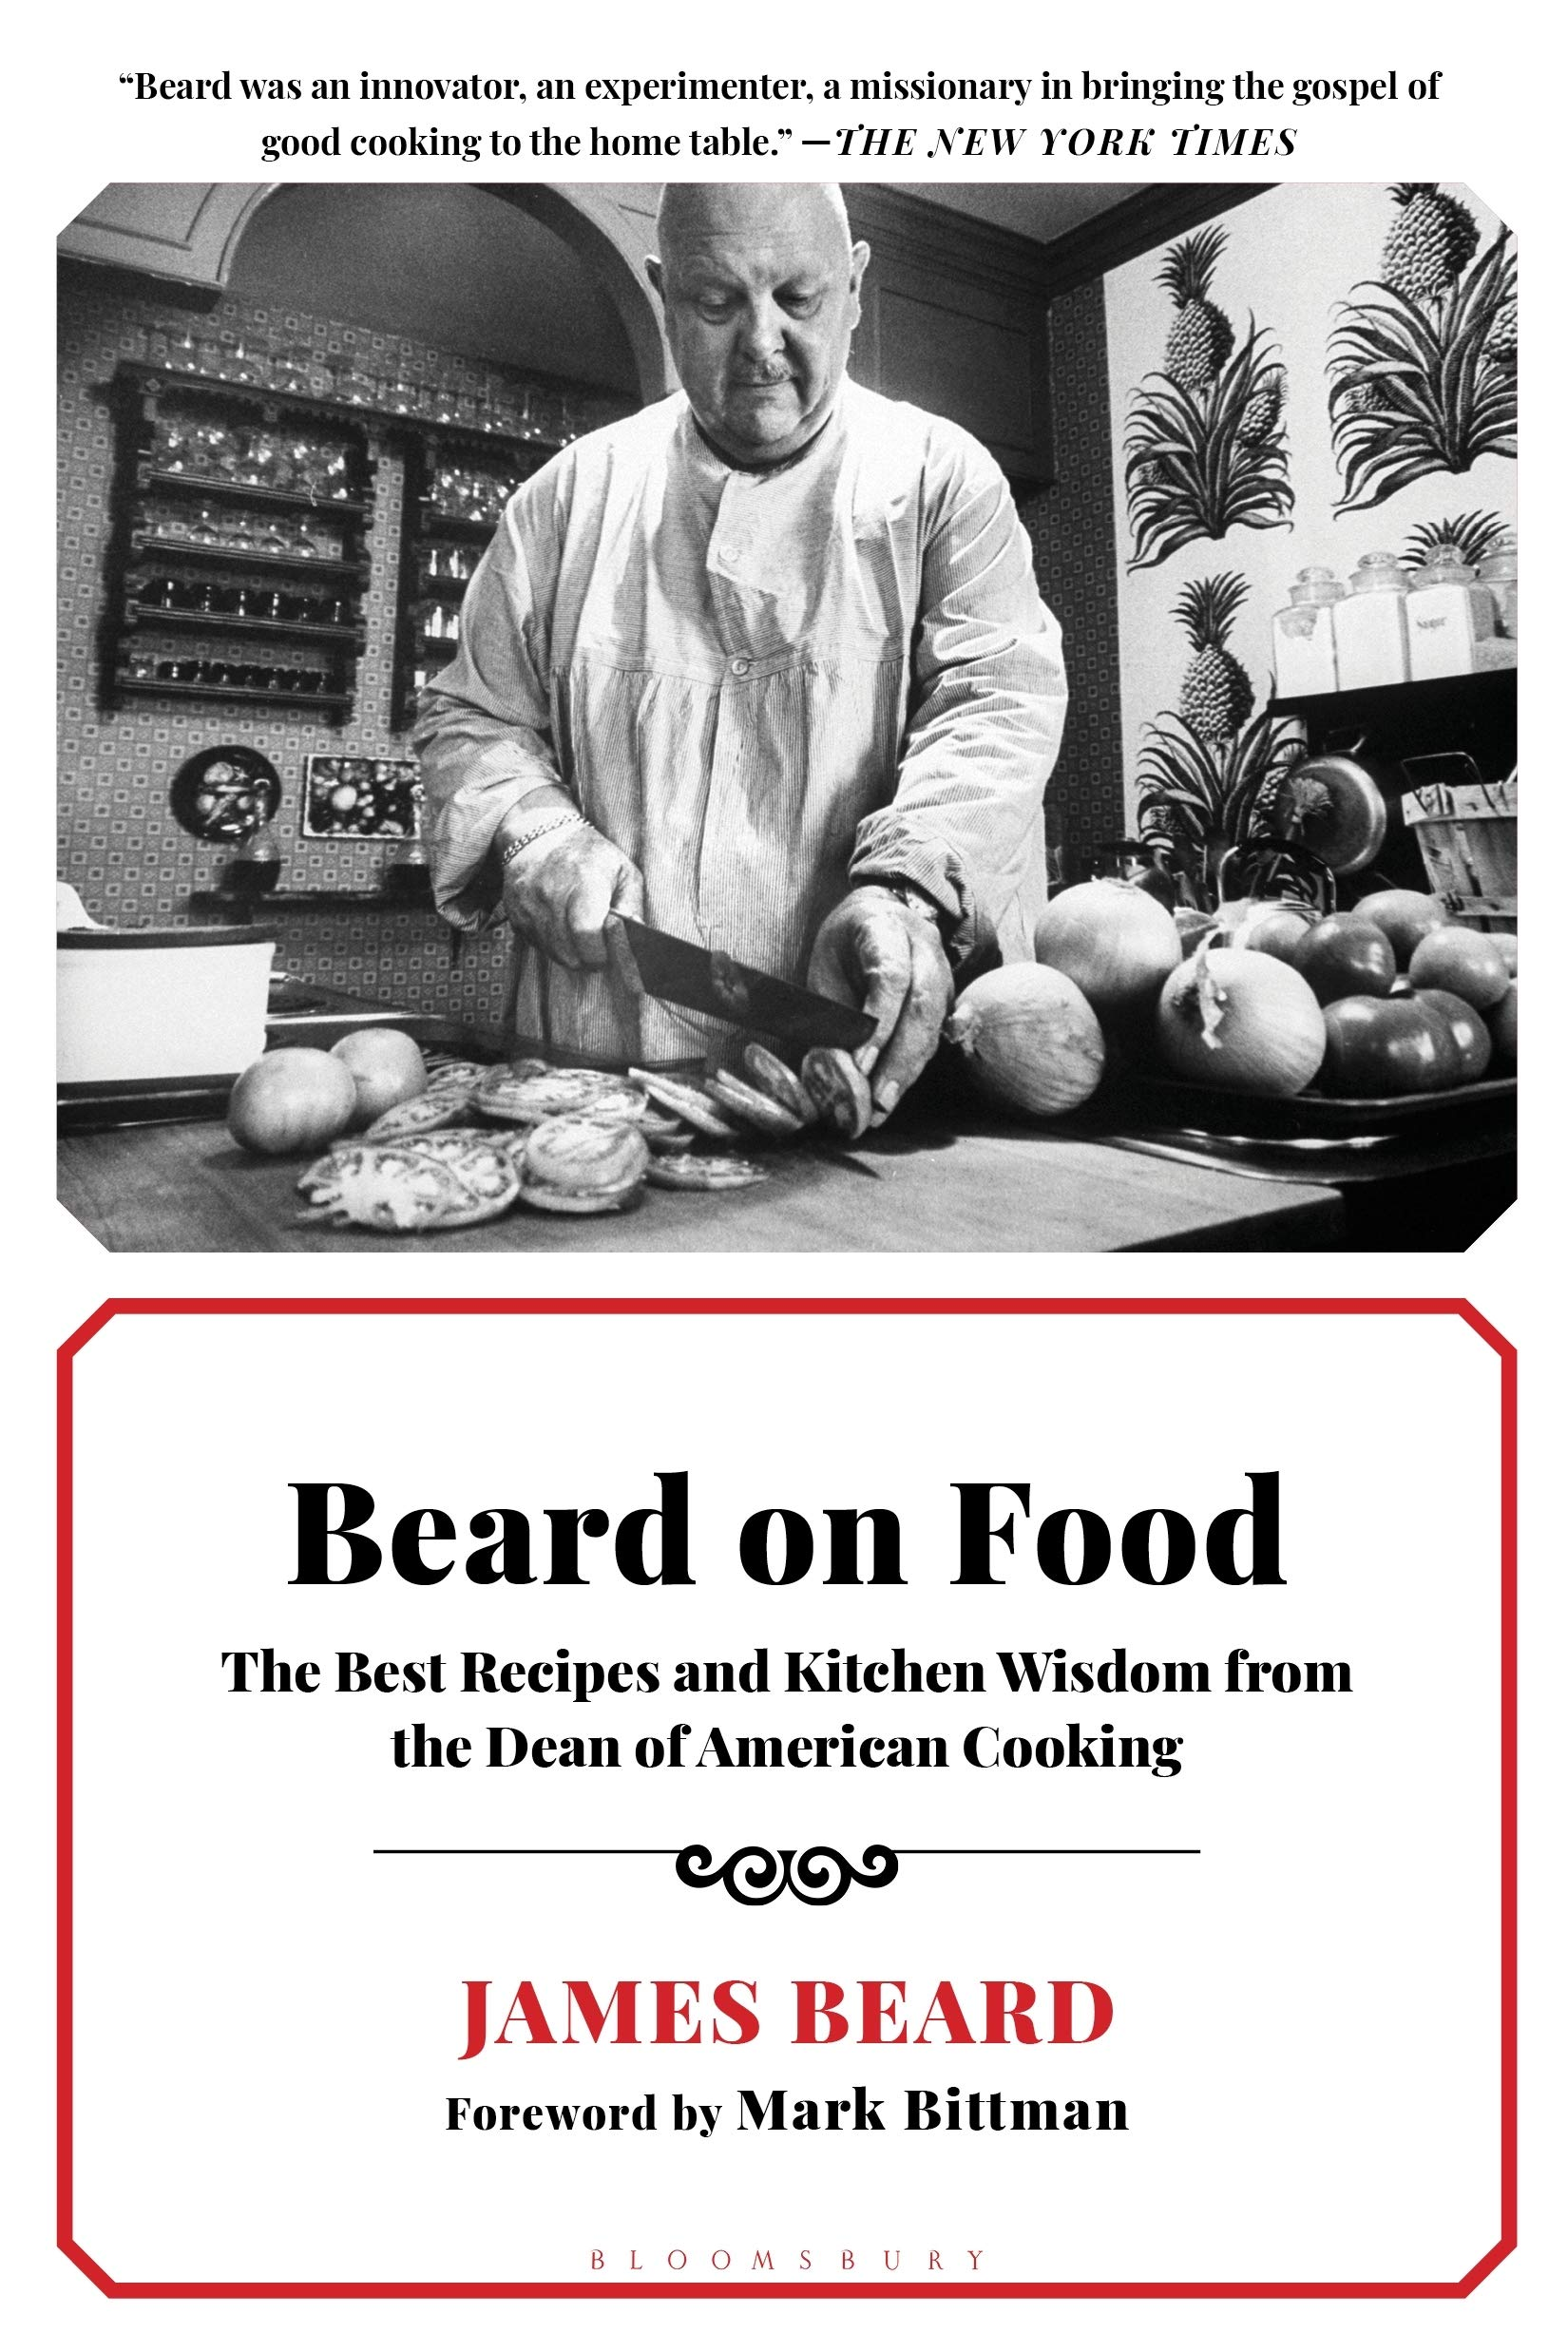 Beard On Food The Best Recipes And Kitchen Wisdom From The Dean Of American Cooking Beard James 9781596914995 Books